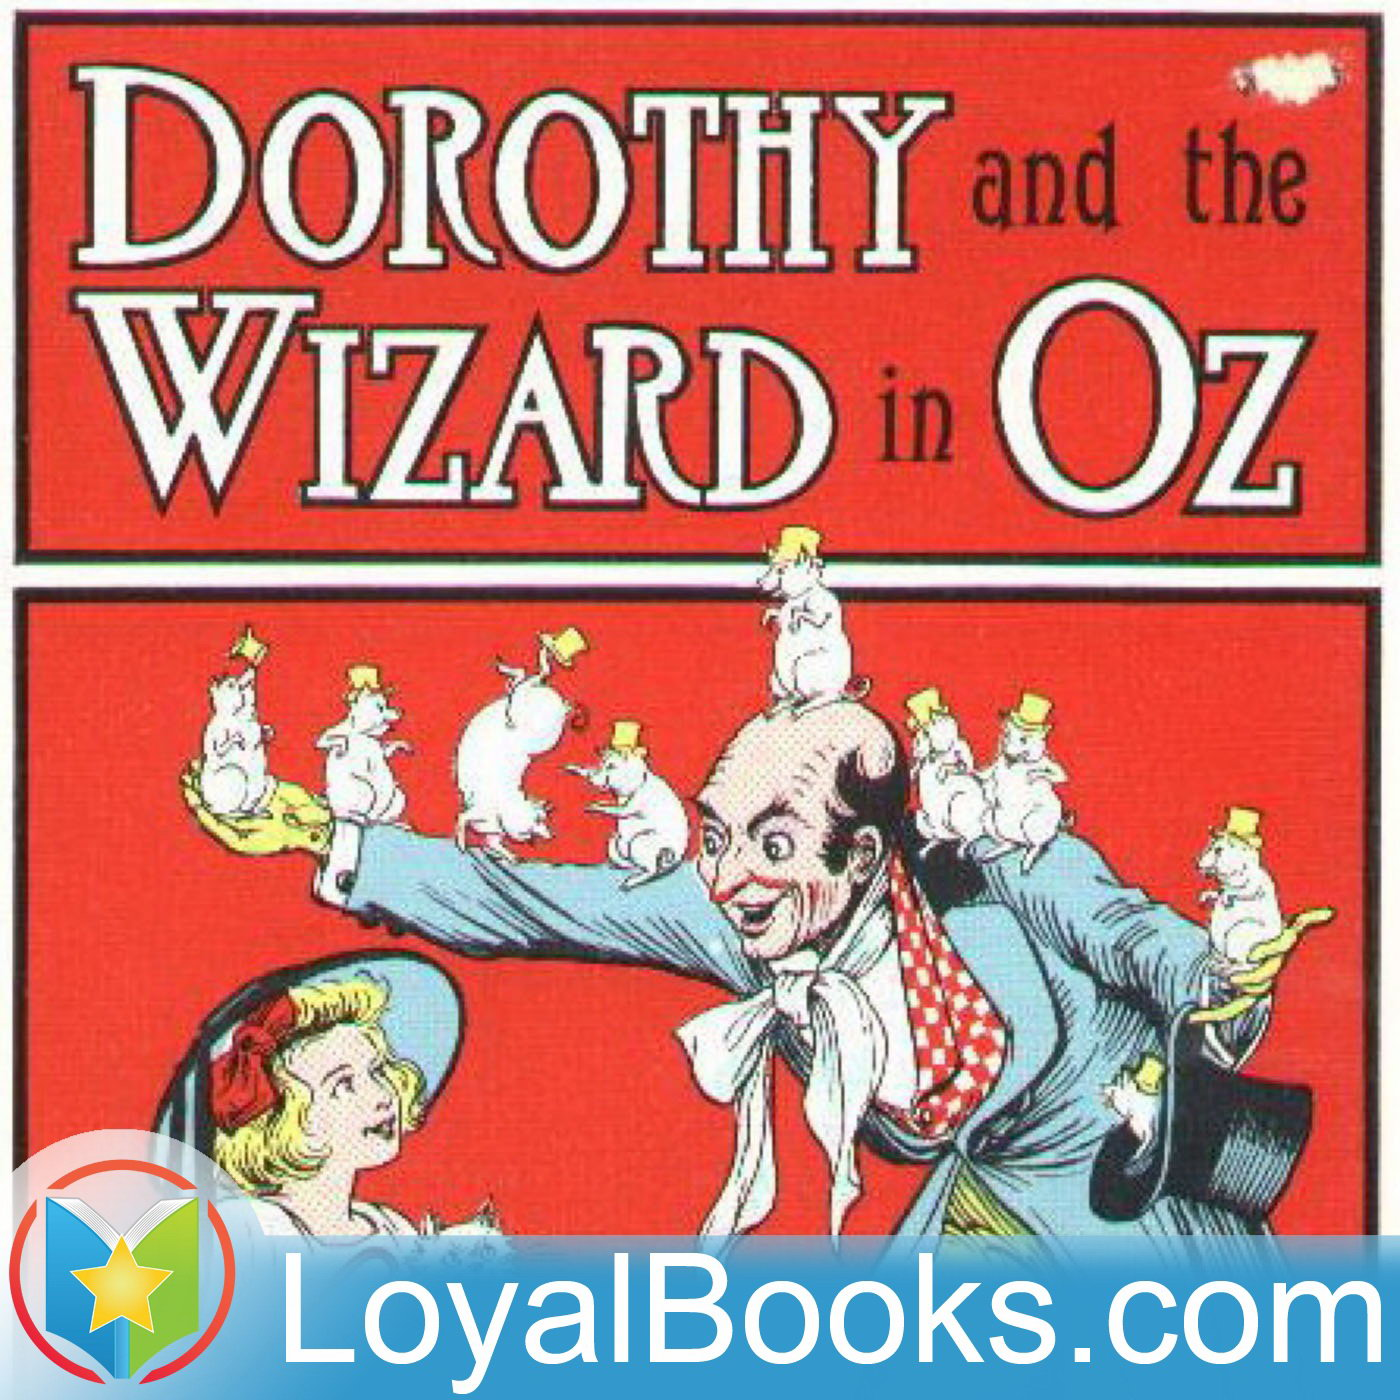 <![CDATA[Dorothy and the Wizard in Oz by L. Frank Baum]]>